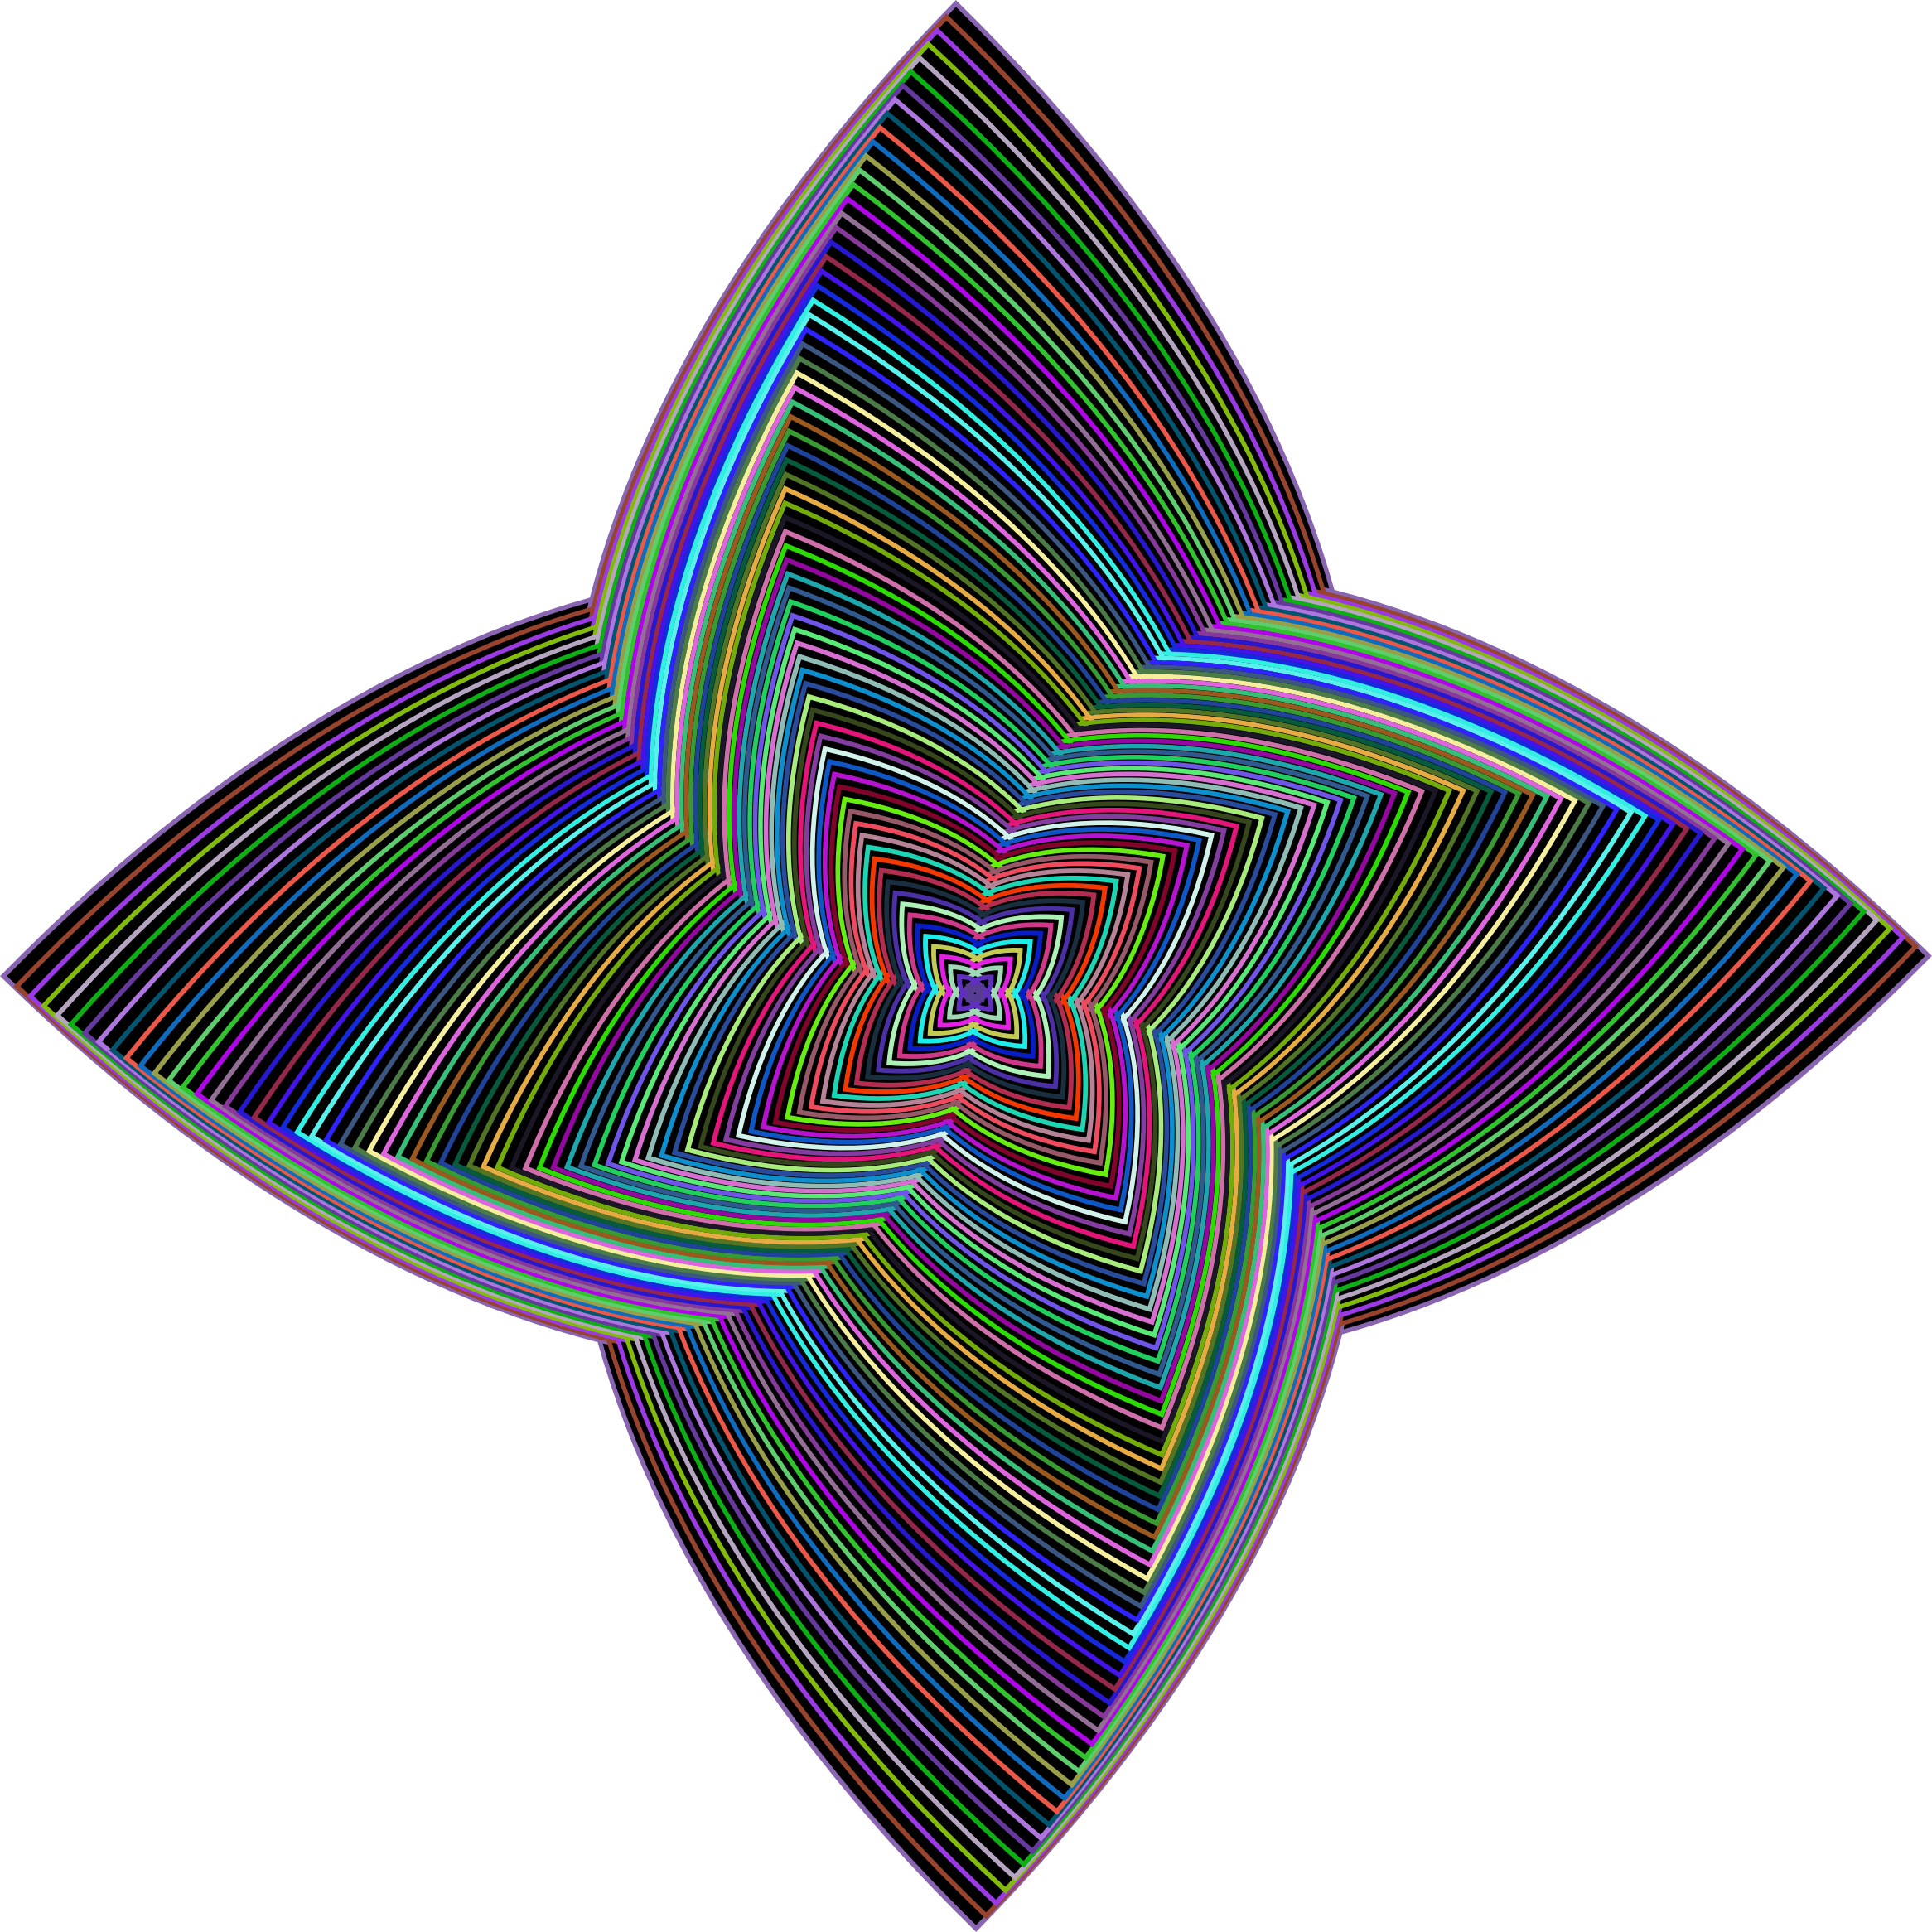 Prismatic Quadrilateral Line Art Variation 2 by GDJ